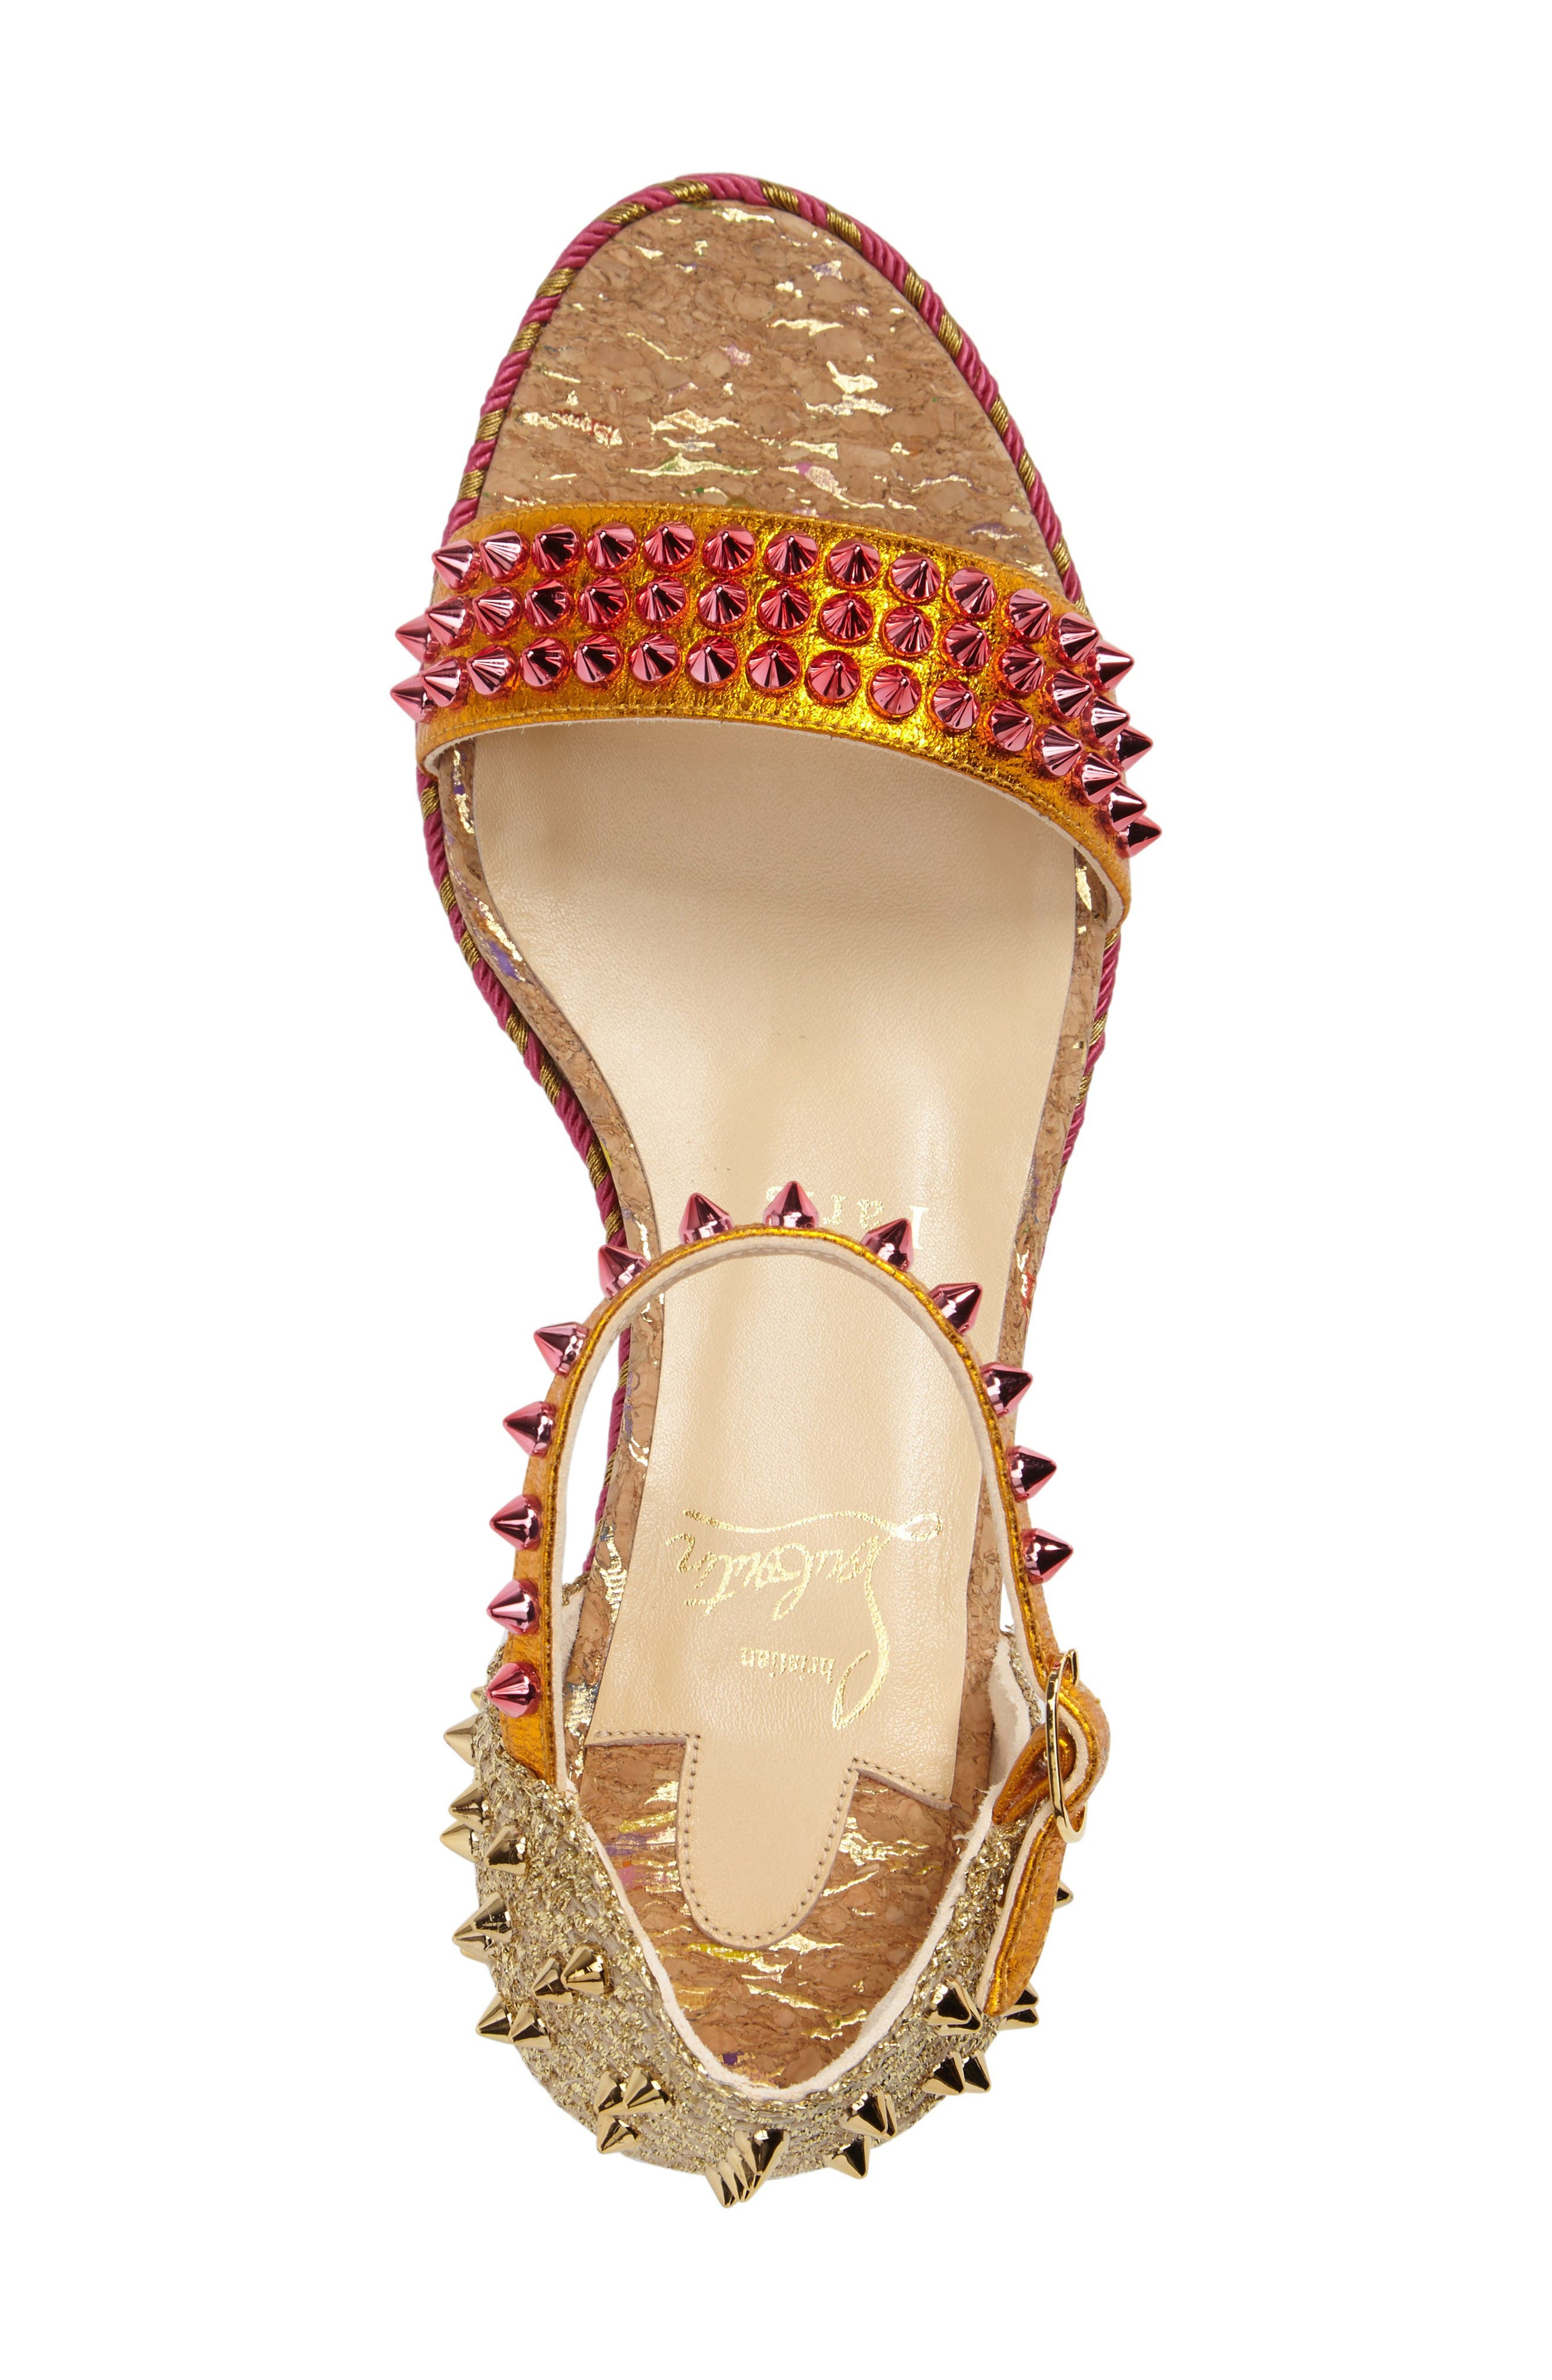 Madmonica Espadrille Platform Sandal,                             Alternate thumbnail 3, color,                             Orange Multi Leather